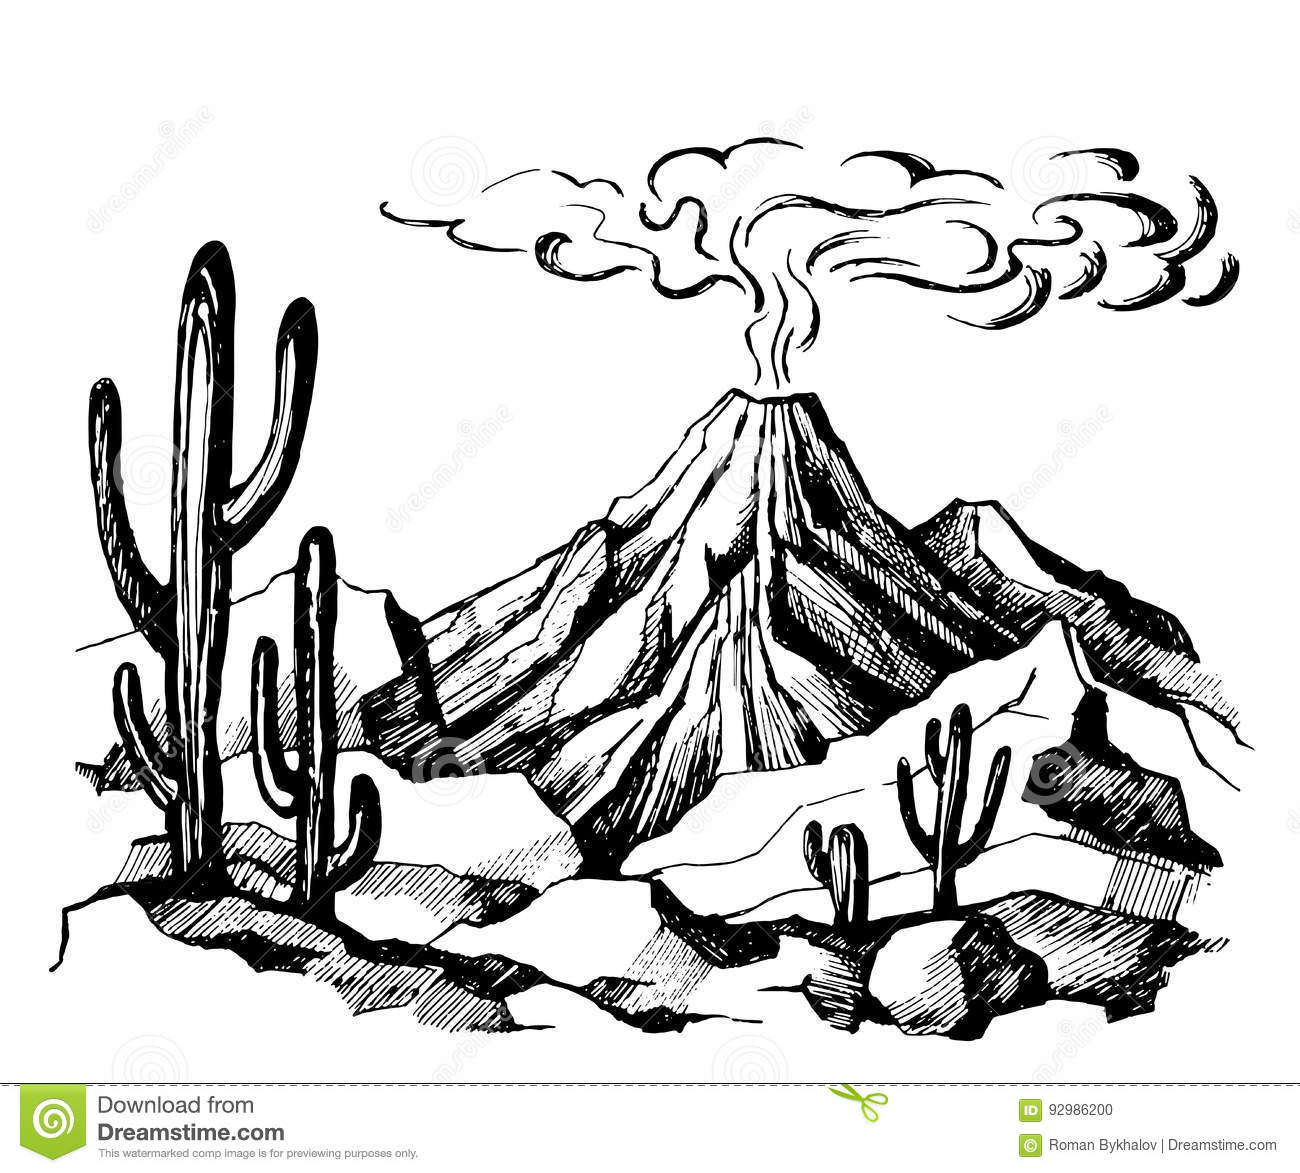 How To Draw A Volcano Landscape